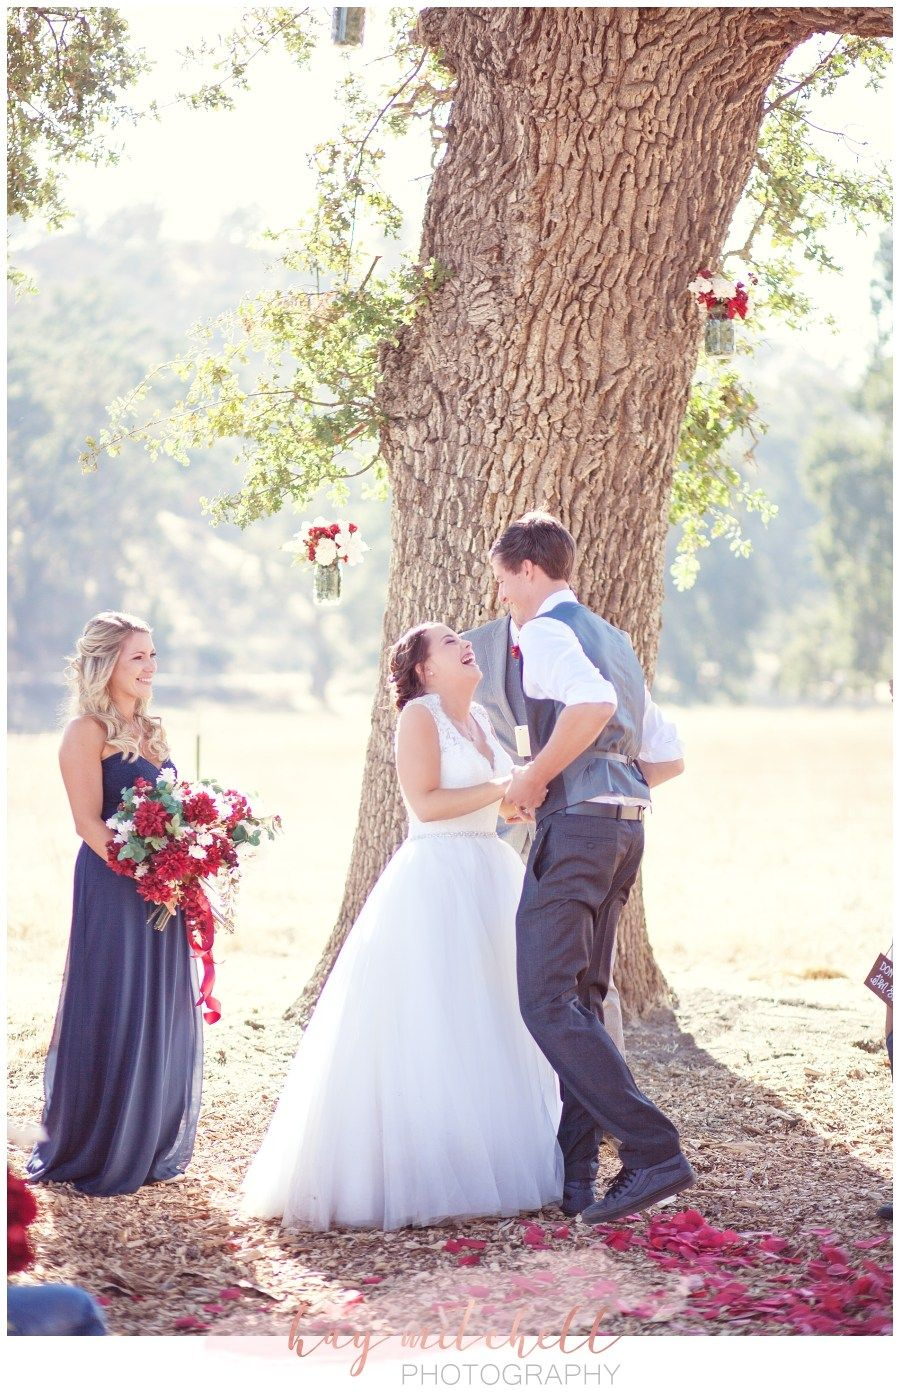 Bakersfield Ca Wedding Photographer Wedding Ideas Wedding Inspiration Diy Wedding Wedding Photography Wedding Ce Wedding Poses Wedding Photography Wedding